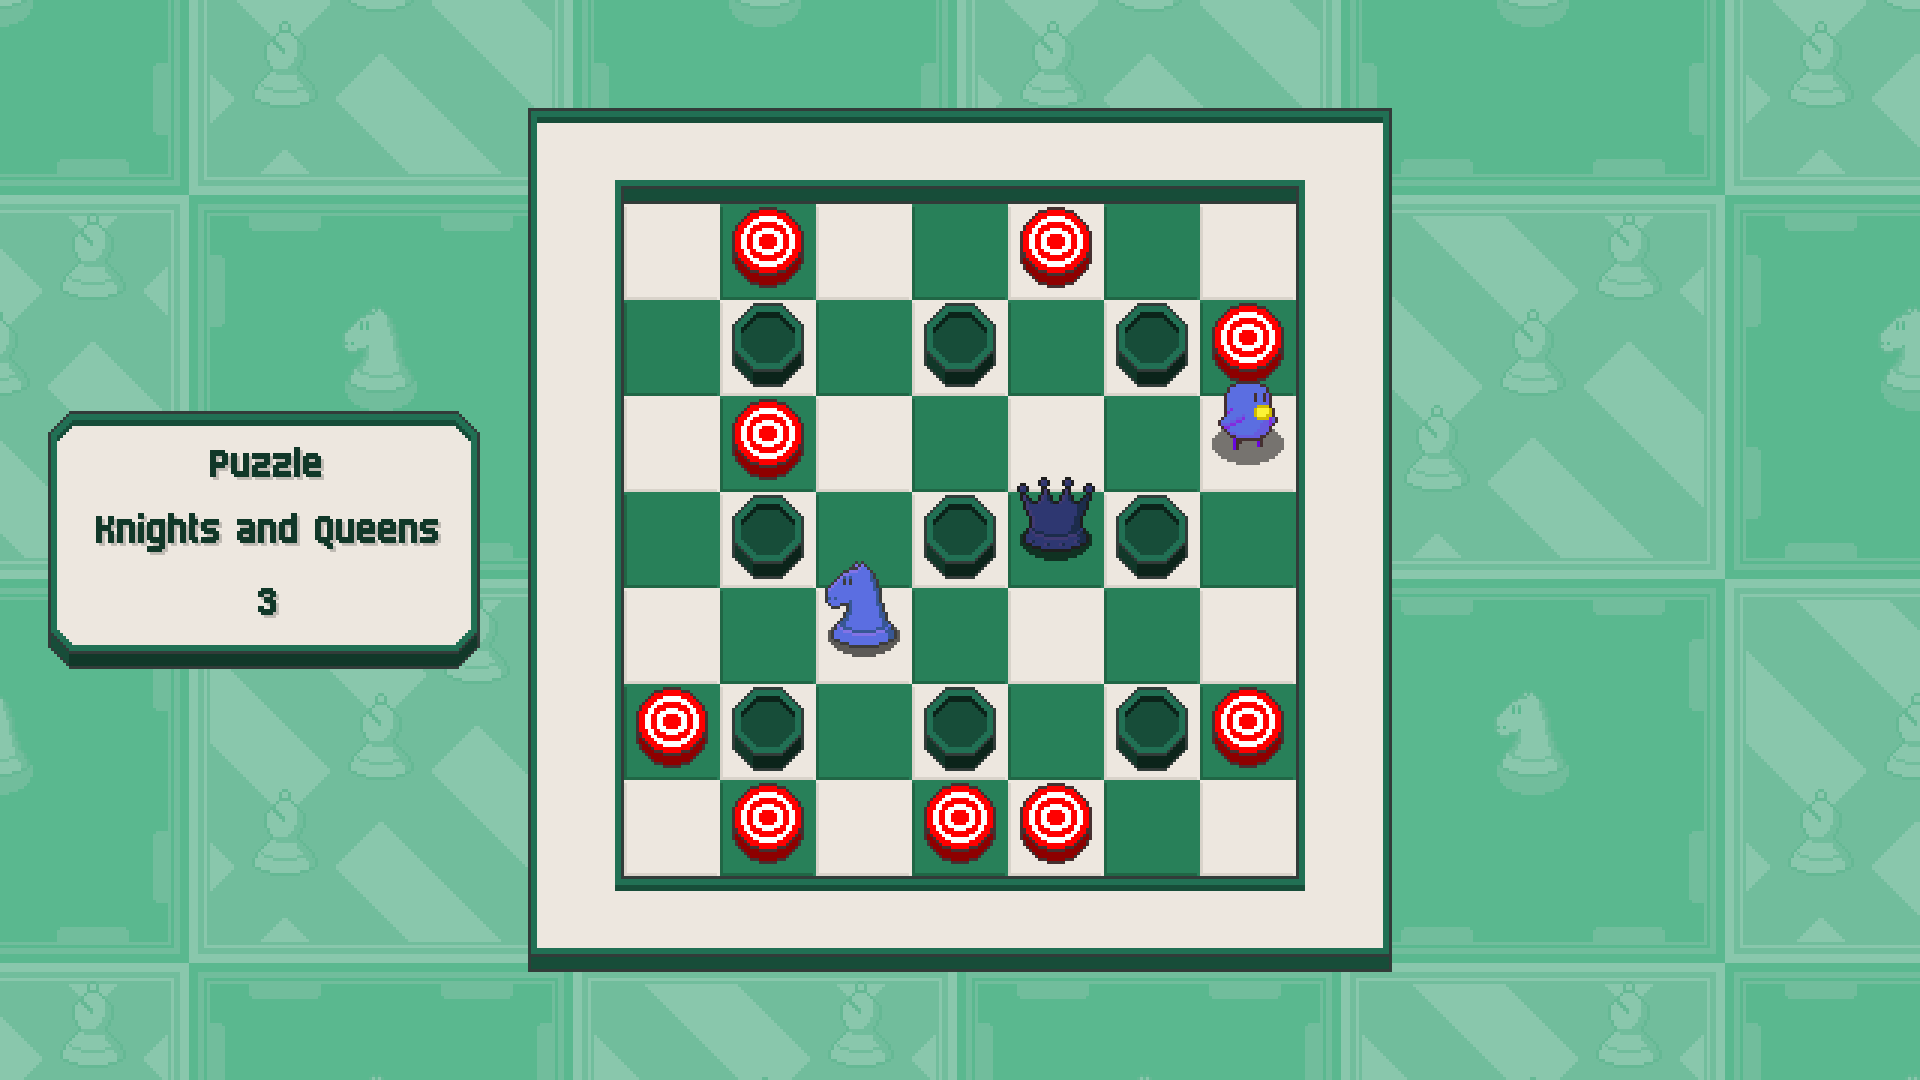 Chessplosion - Puzzle Solution Guide + Achievements Walkthrough - Grandblaster: Knights and Queens - E5288A8